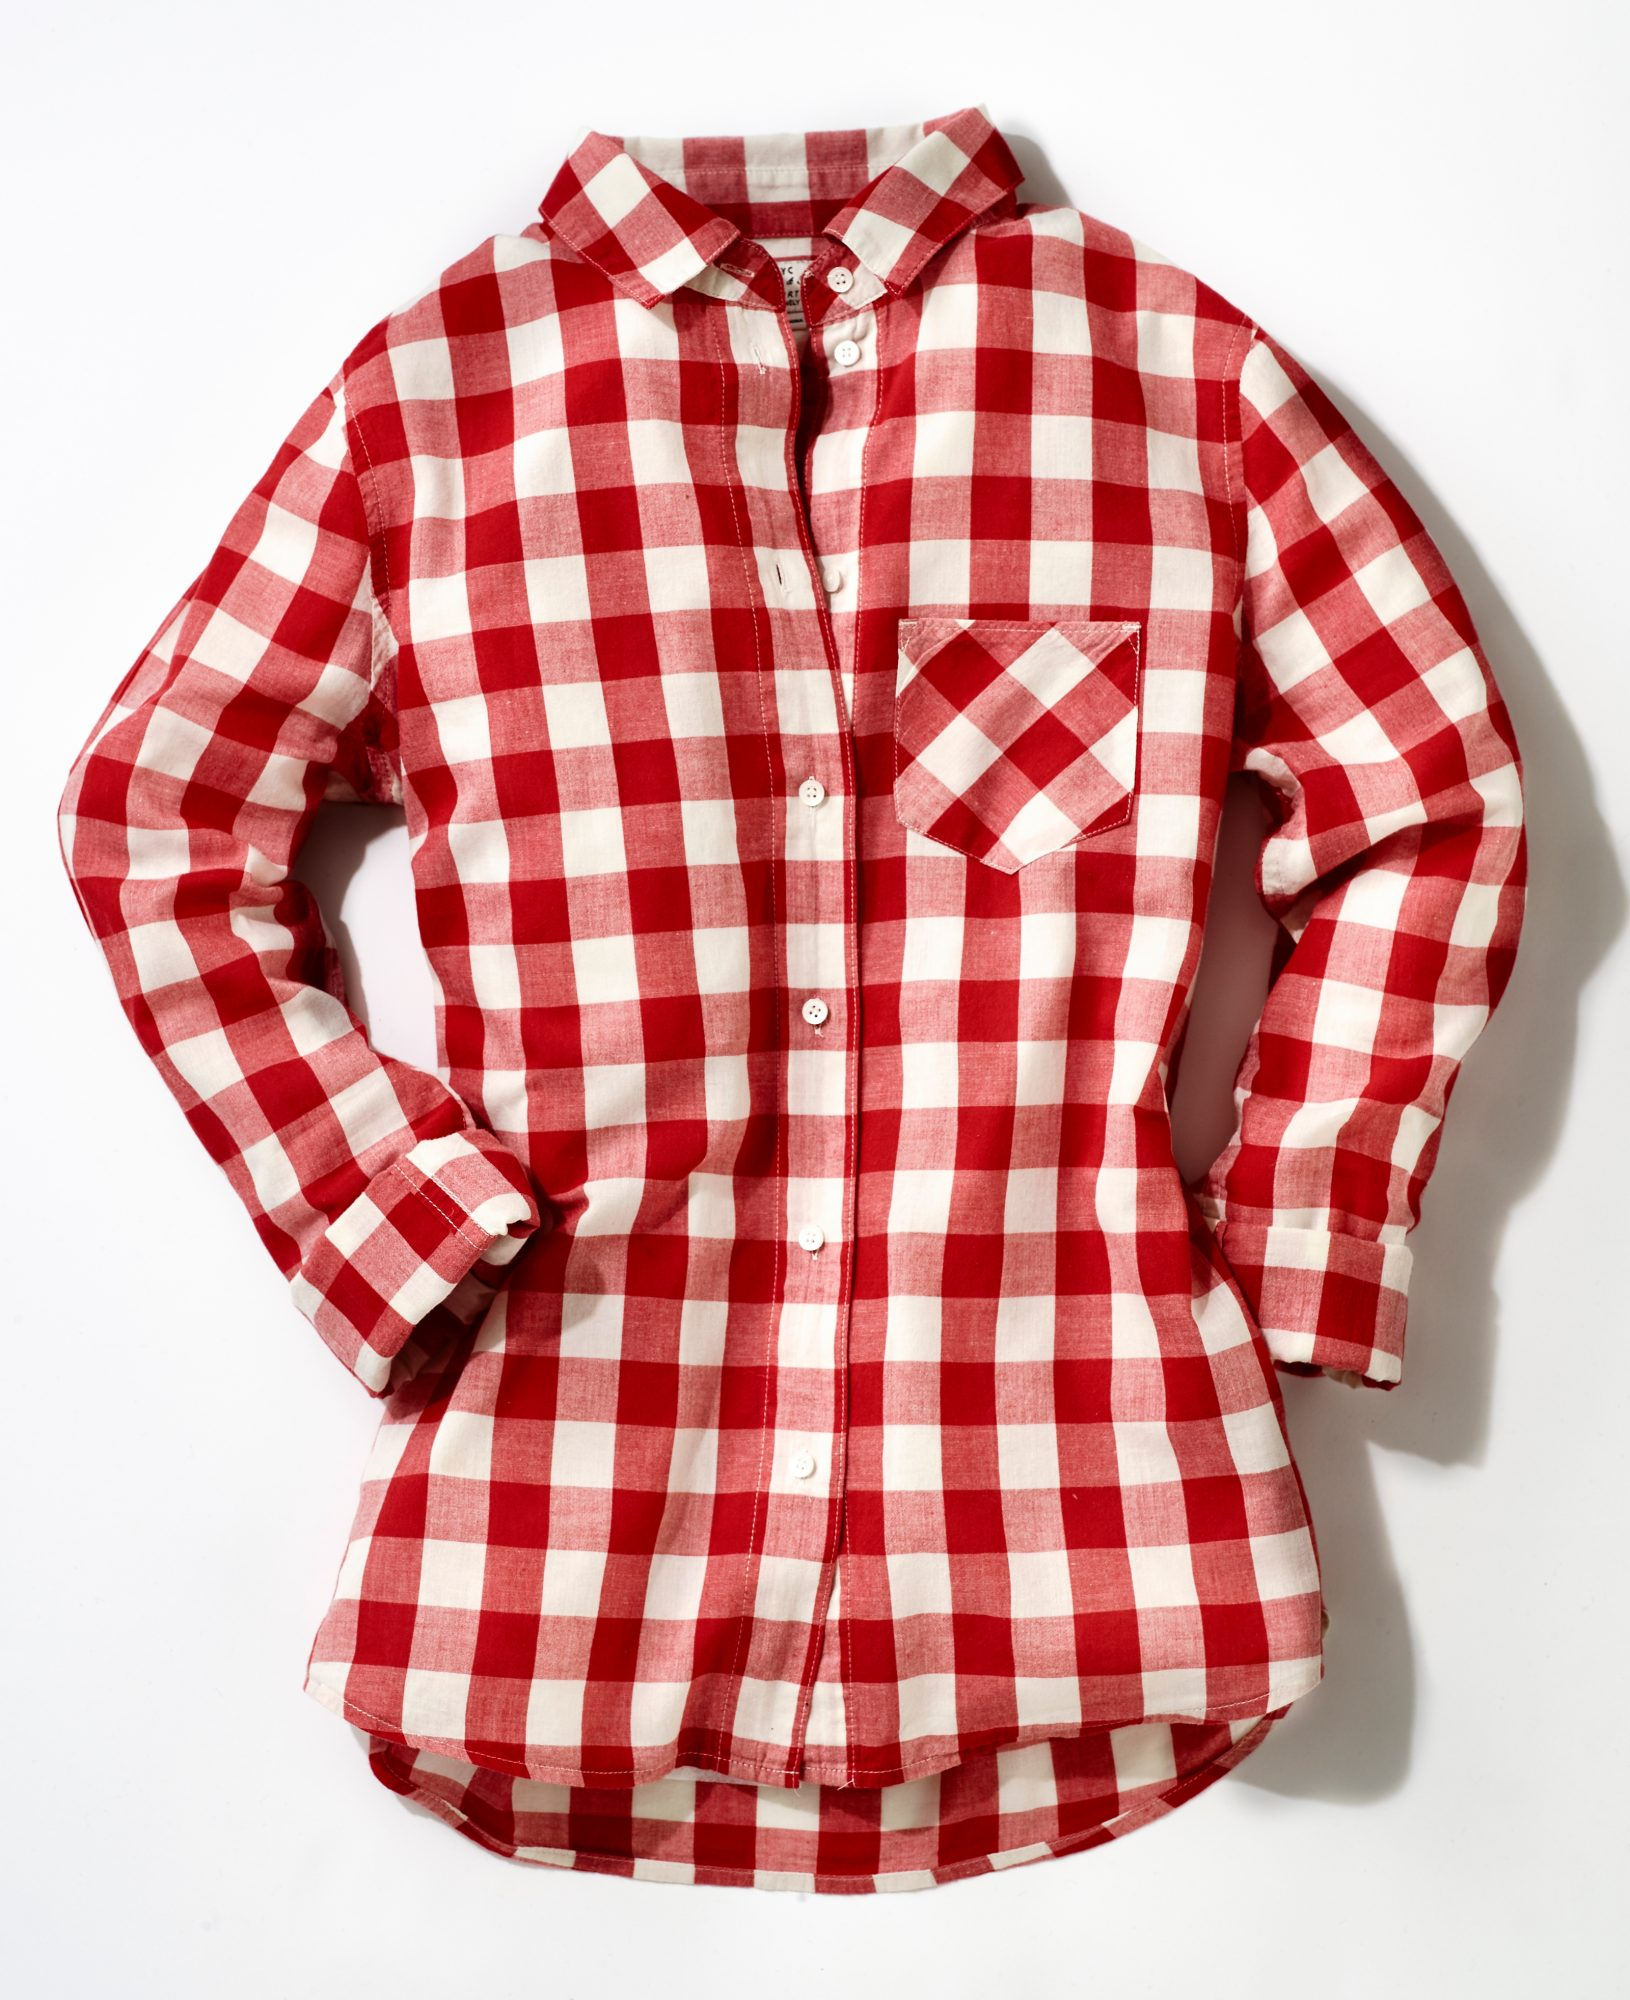 12. A Gingham Button-down